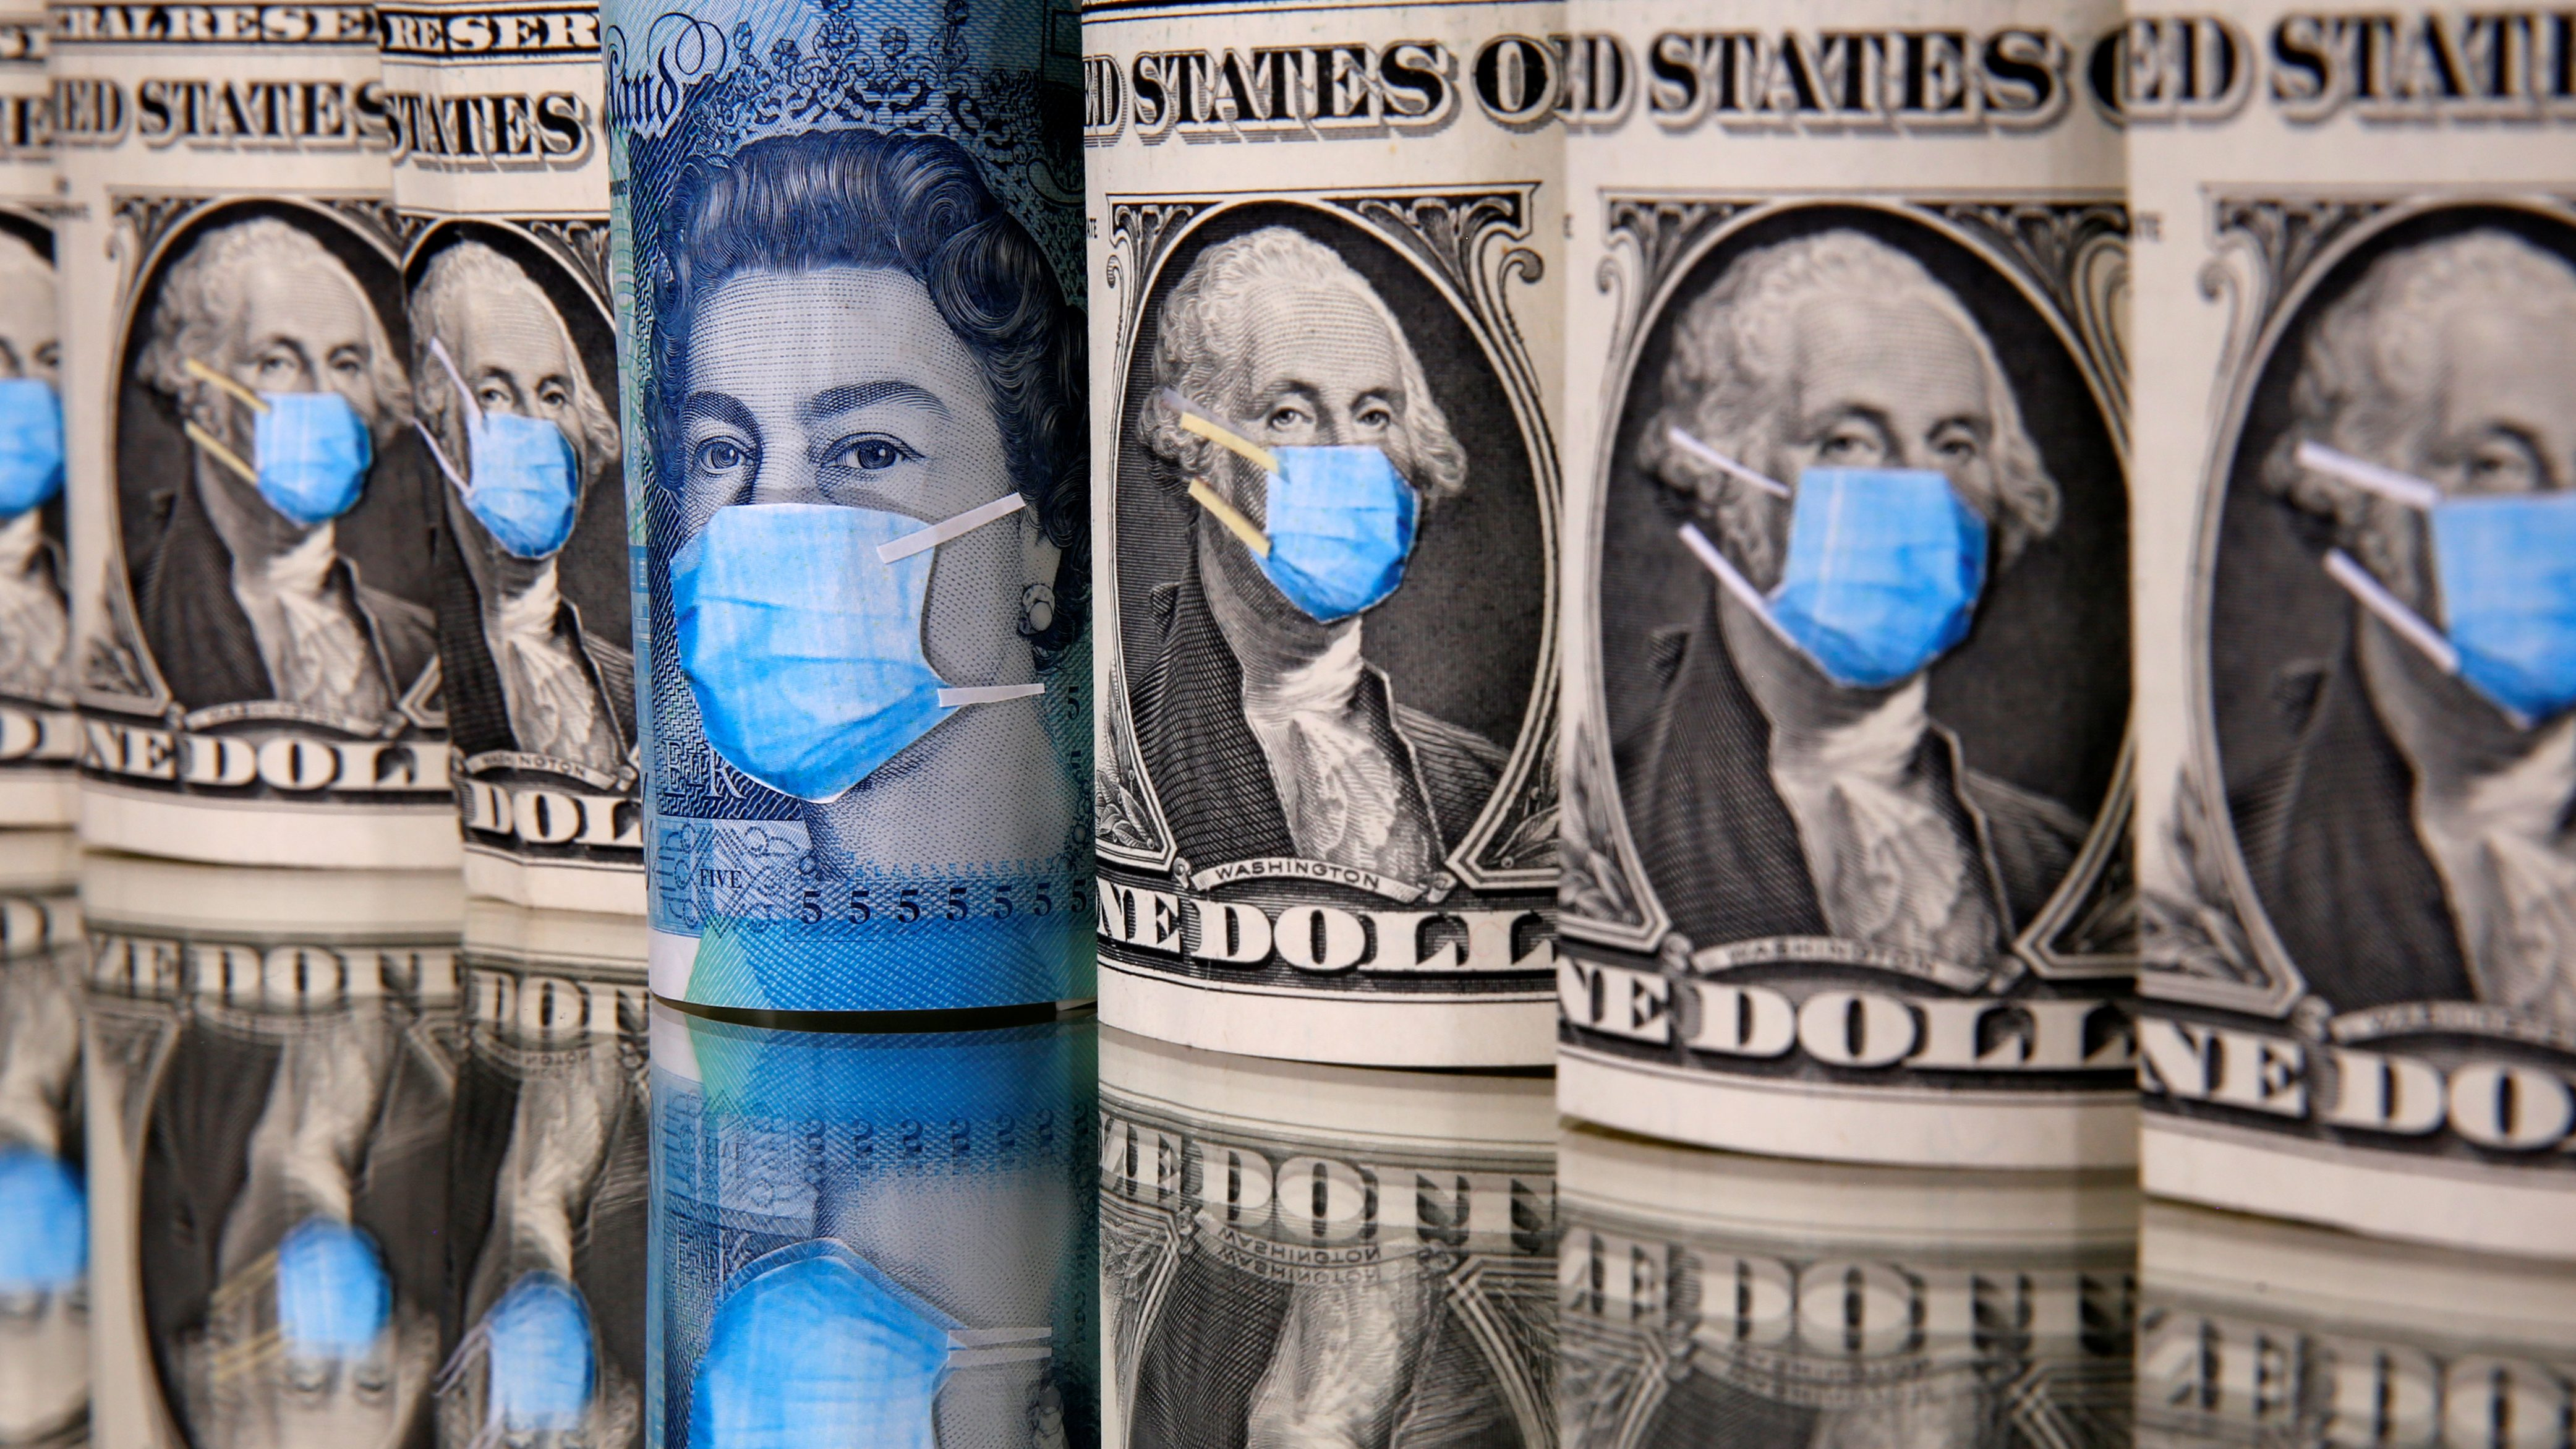 George Washington and Queen Elizabeth II are seen with printed medical masks on the one Dollar and Pound banknotes in this illustration.